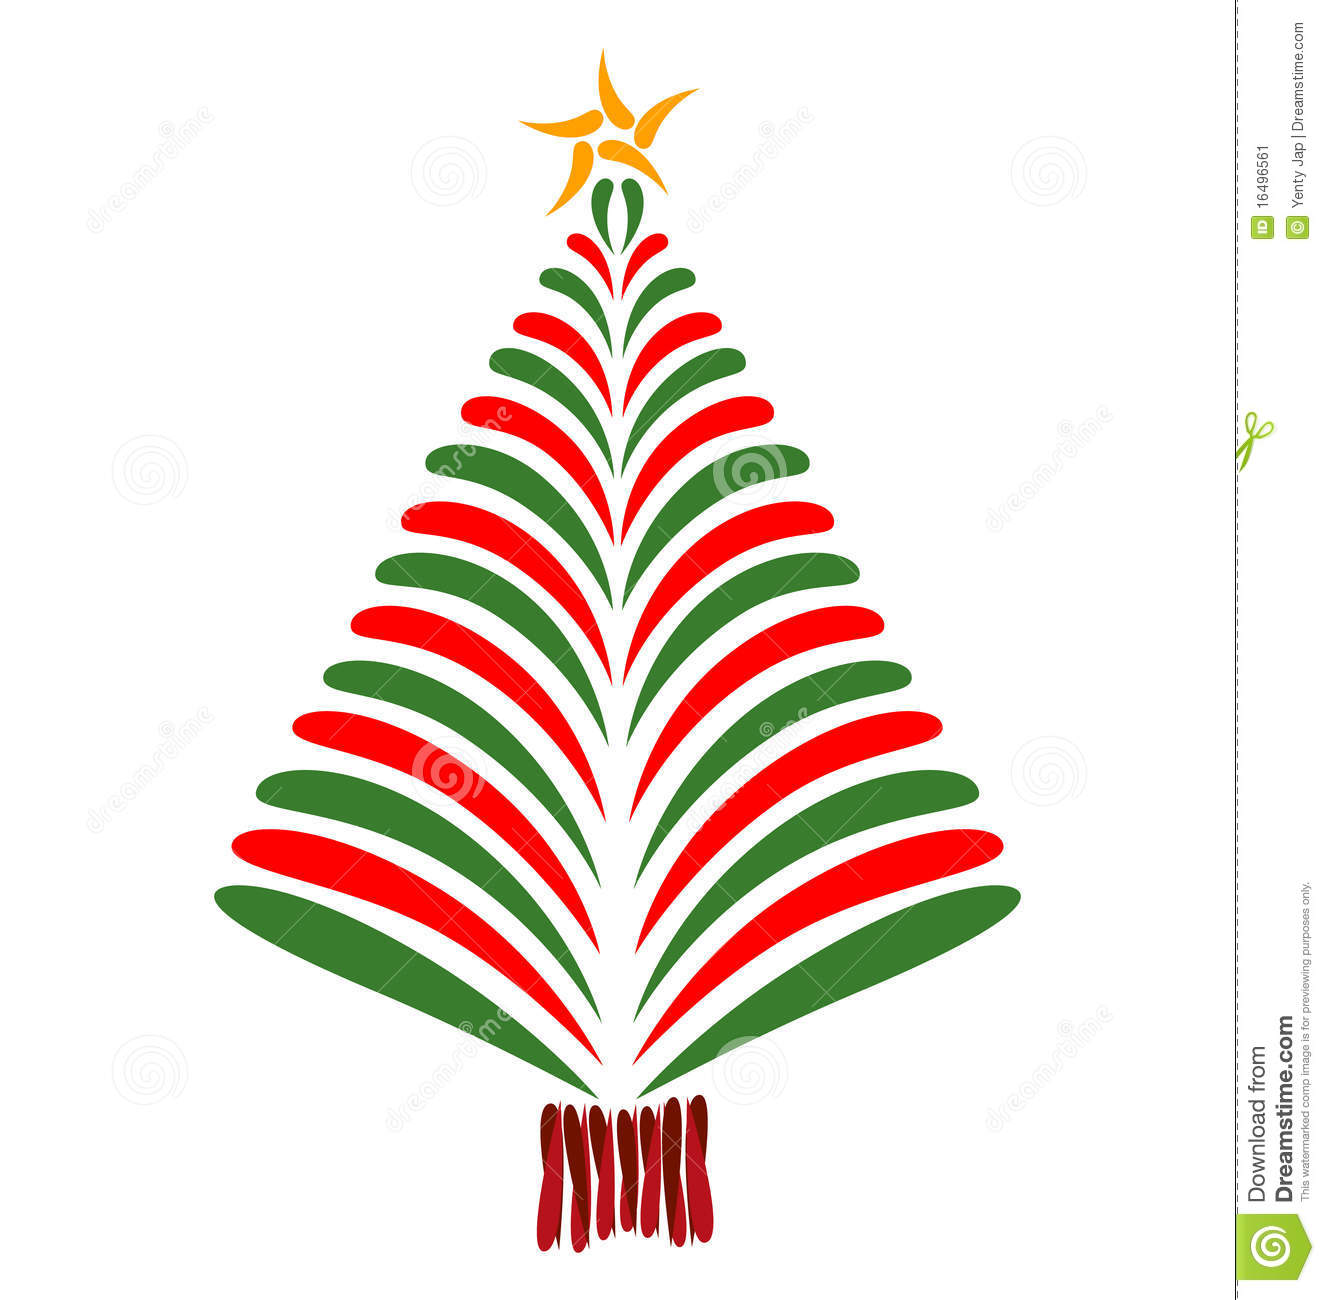 Red green christmas tree stock image image 16496561 for Red and green christmas tree